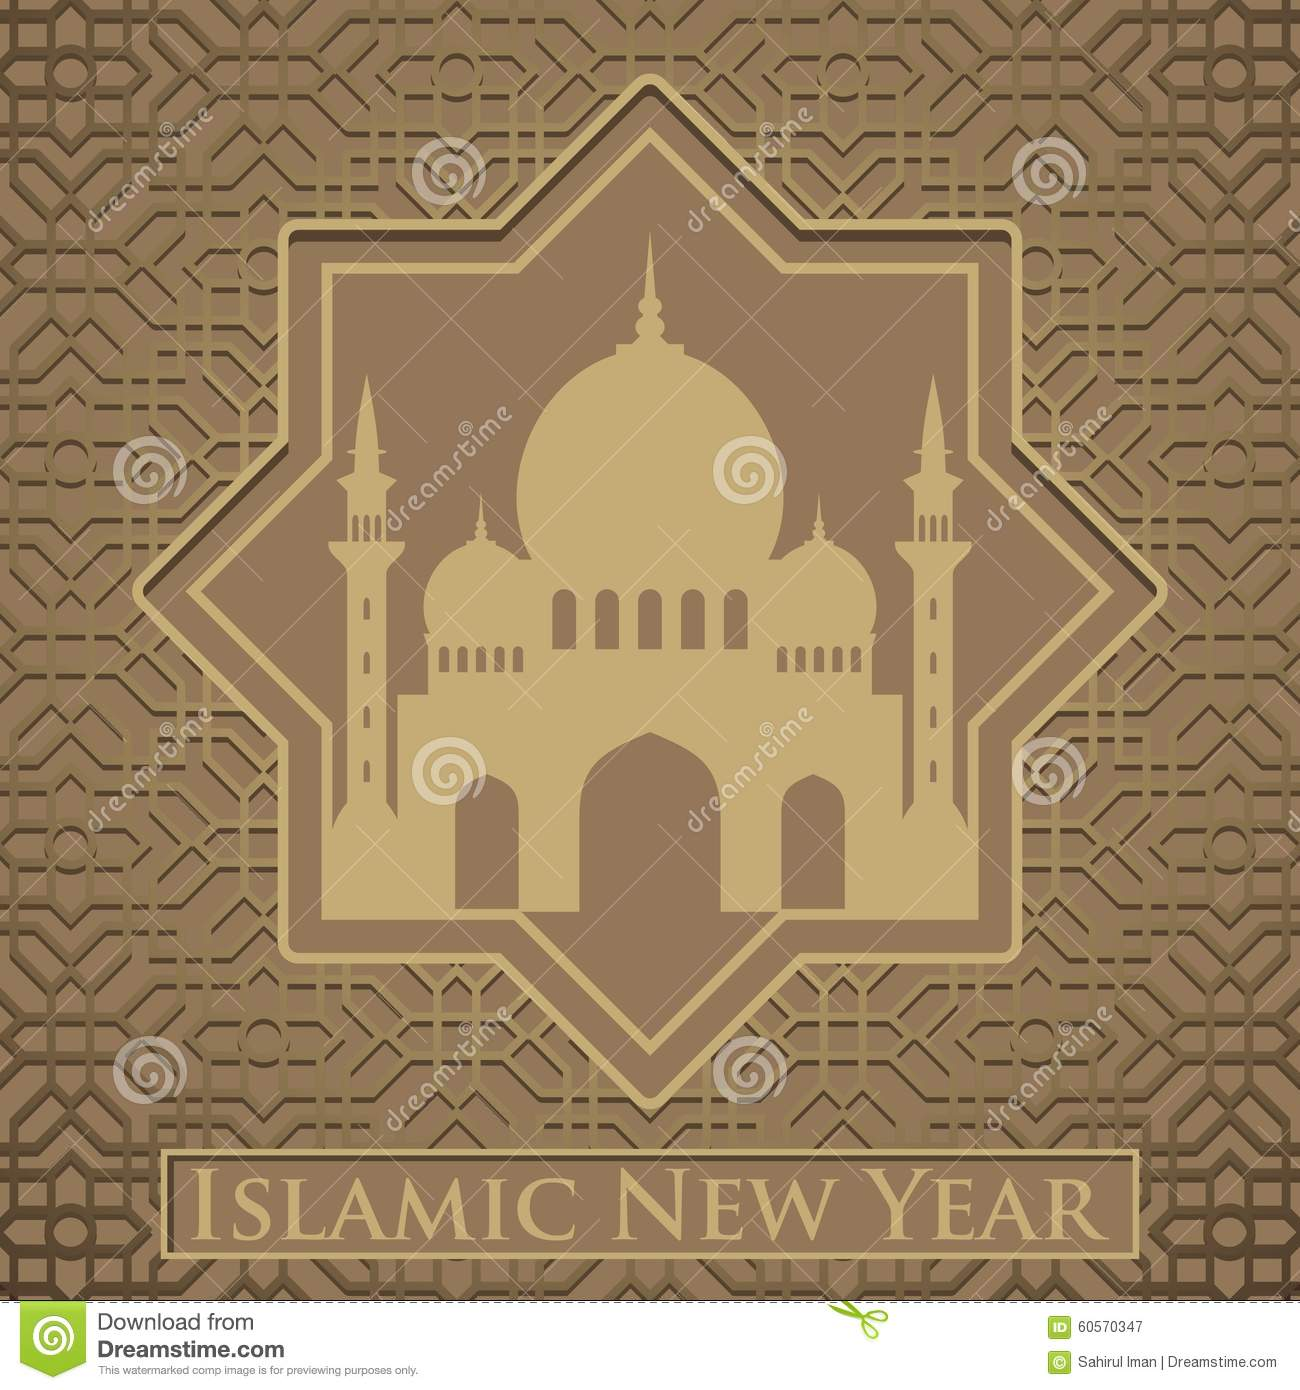 Islamic new year vector template stock illustration for Muslim will template